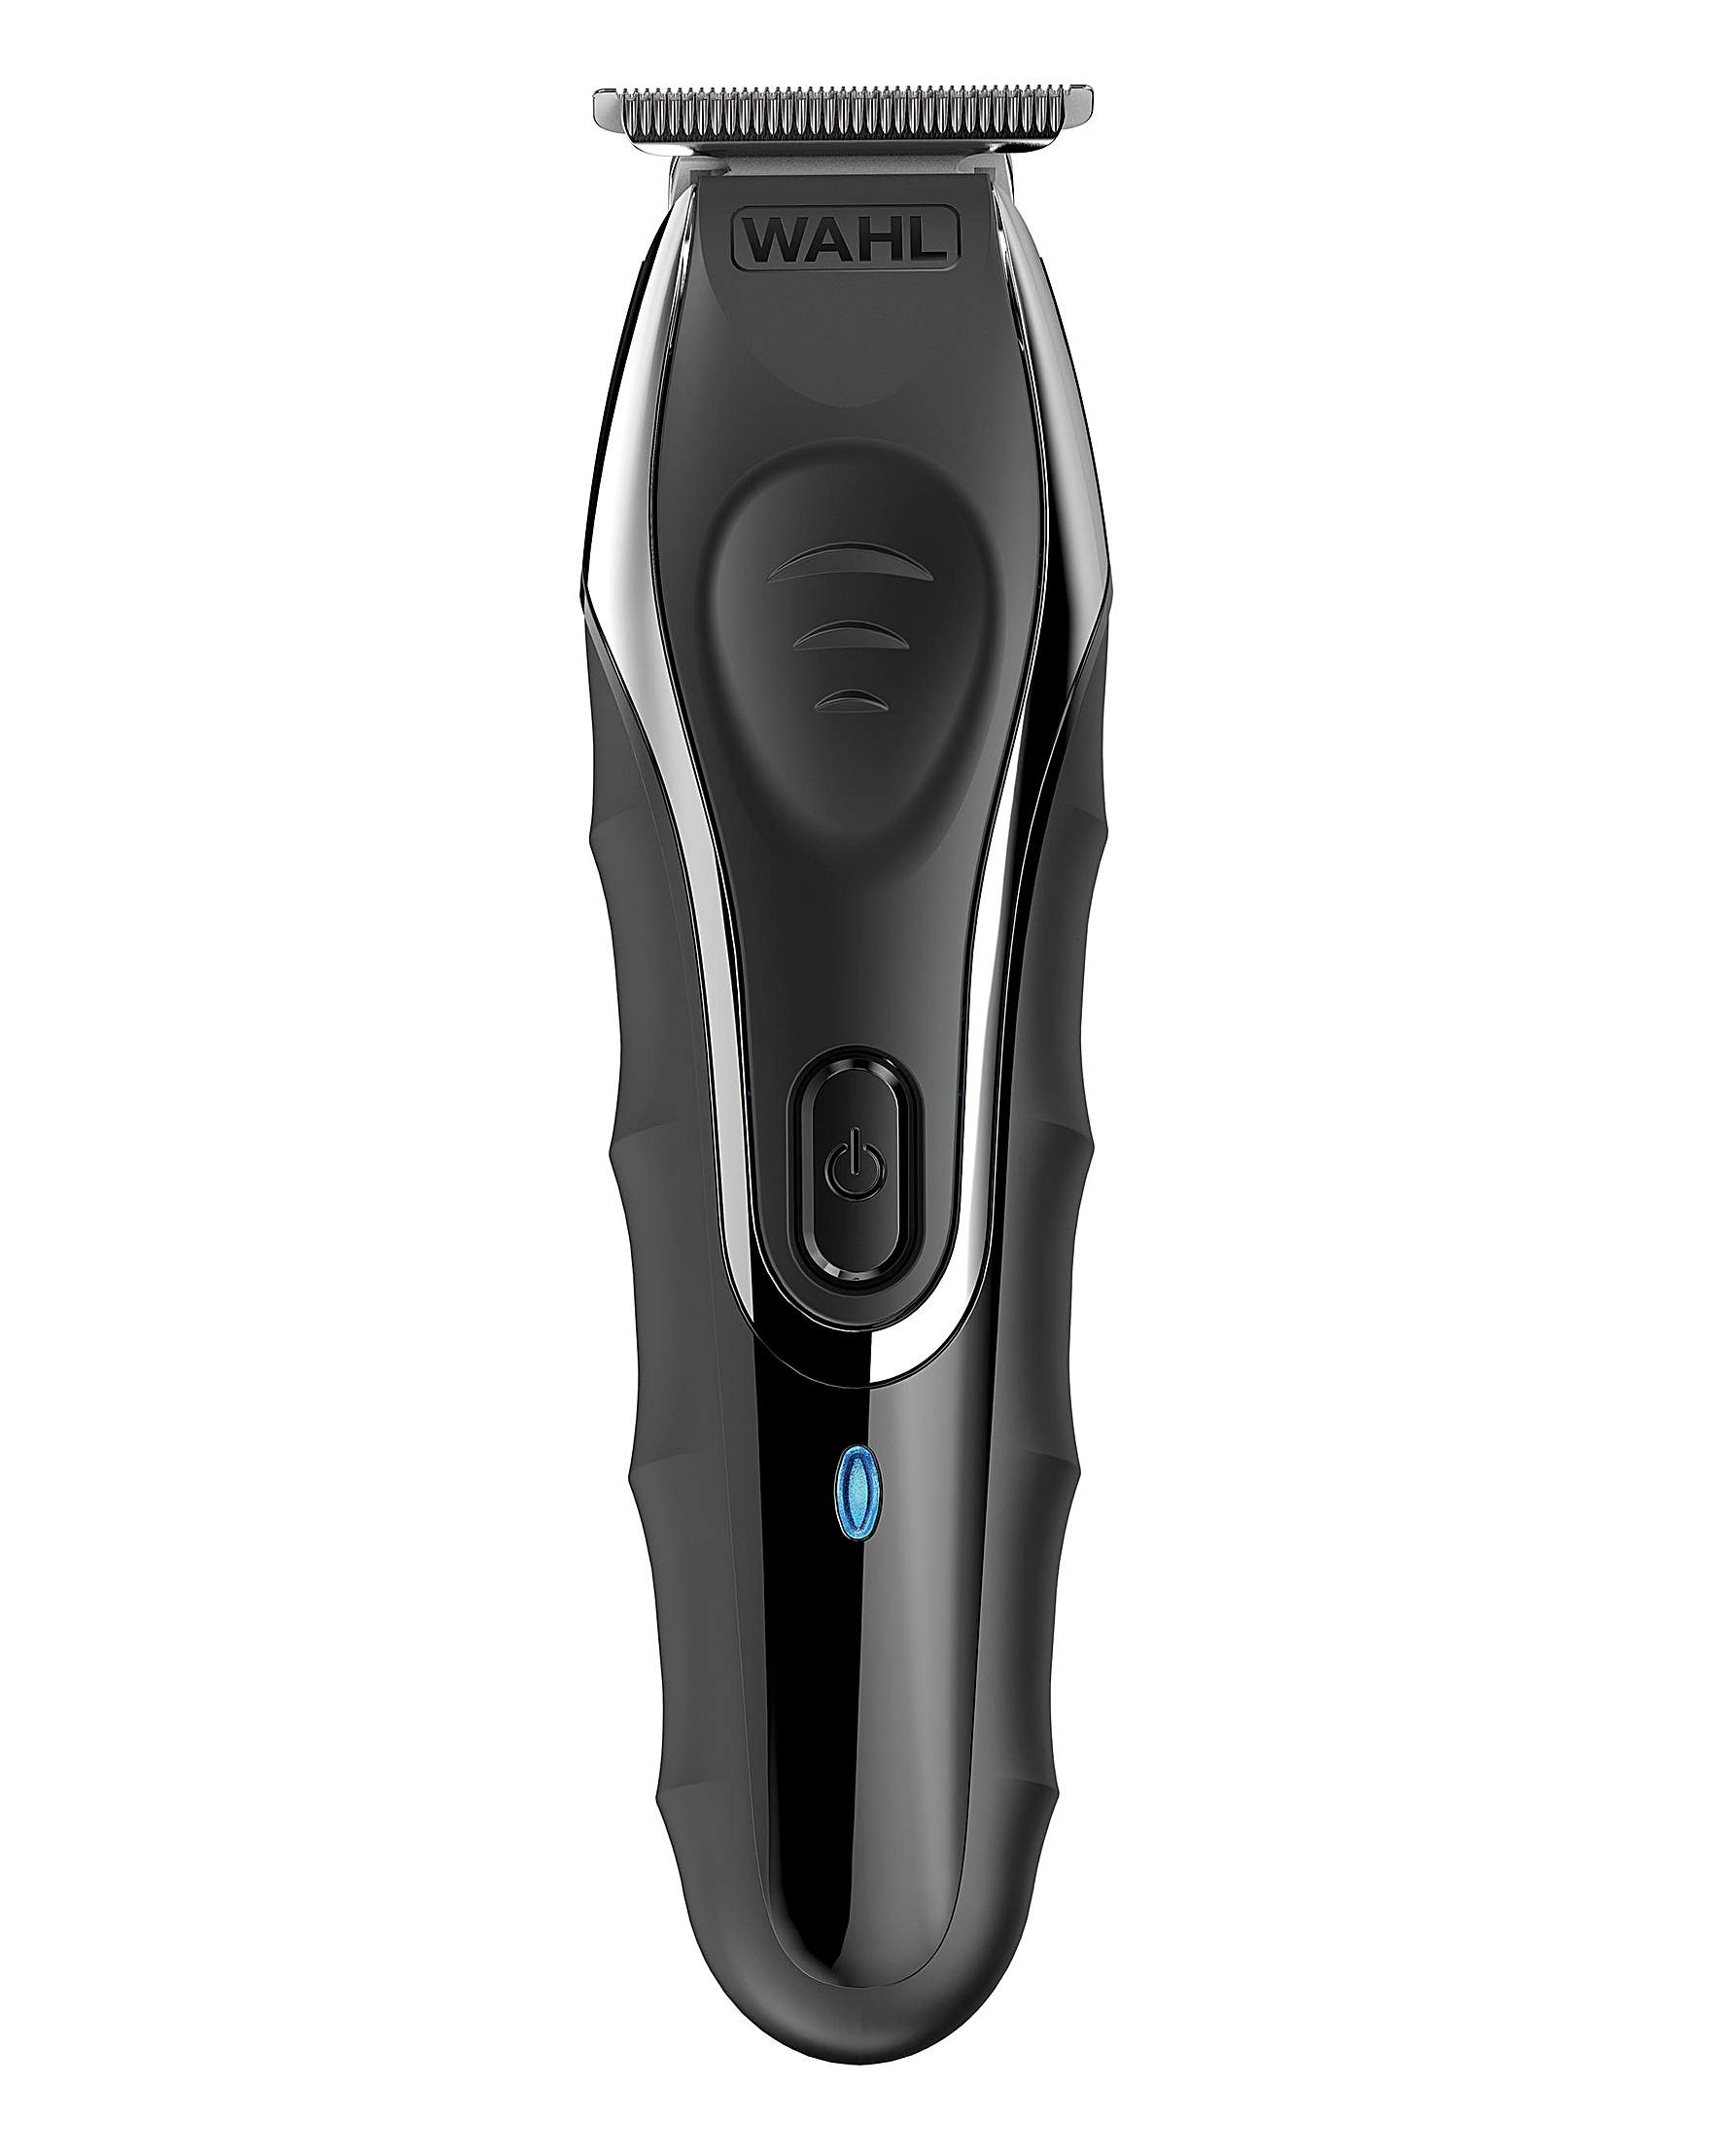 Wahl Aqua Blade Trimmer Kit J D Williams - Wahl Aqua Blade Beard Trimmer 9899-800x , HD Wallpaper & Backgrounds